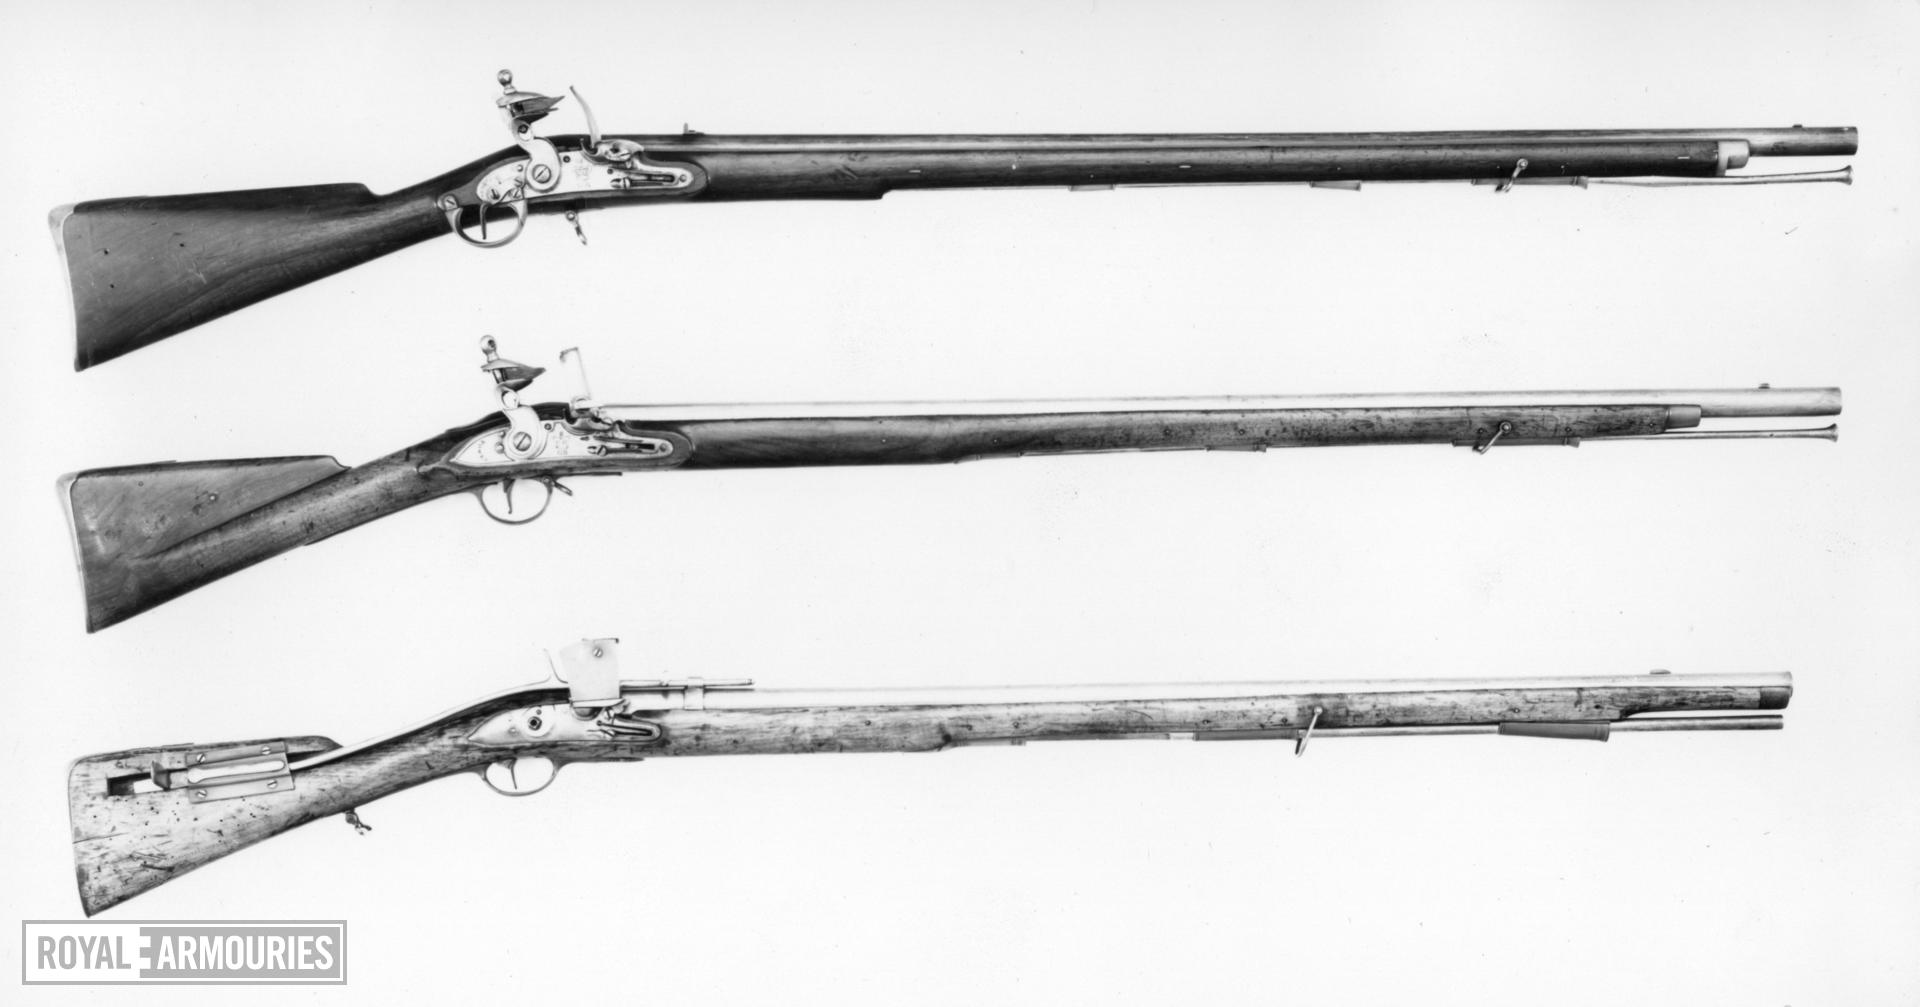 Flintlock military musket - New Land Service Pattern, Experimental Model Special trigger by John Noble, Enfield